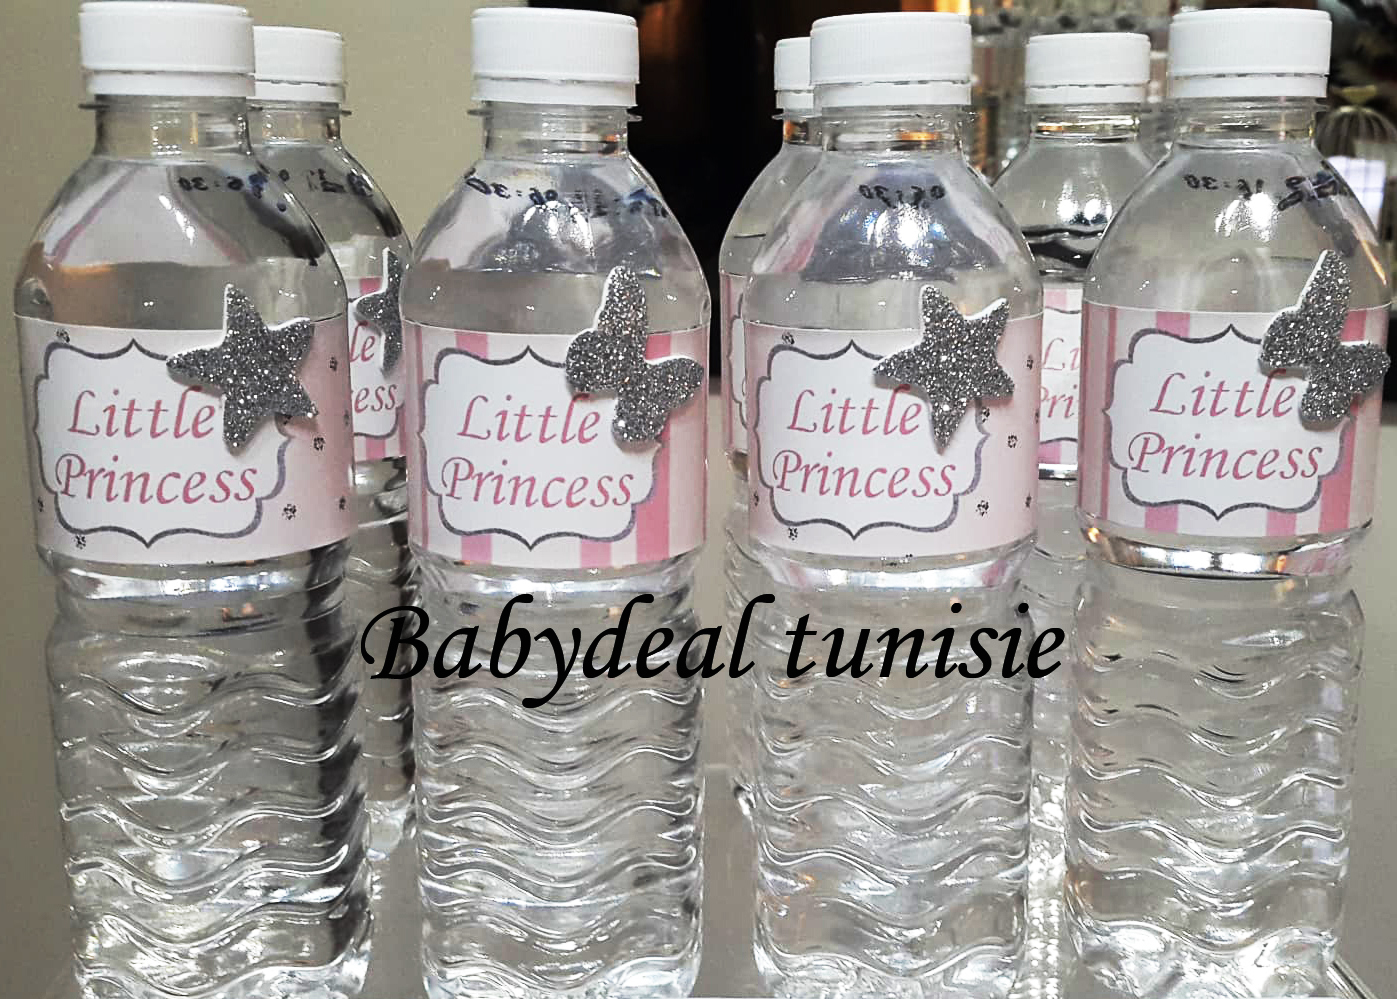 bottle-water--princess-babydeal-tunisie